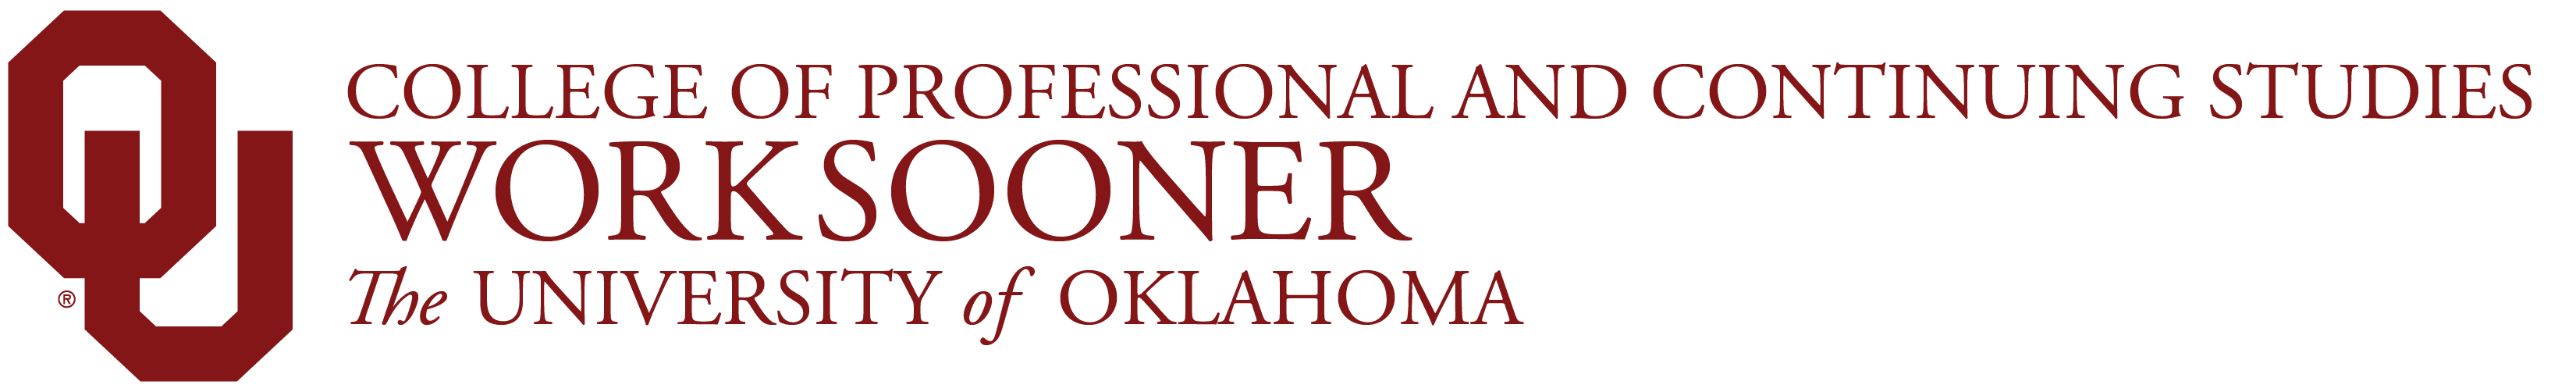 OU College of Professional and Continuing Studies - Work Sooner